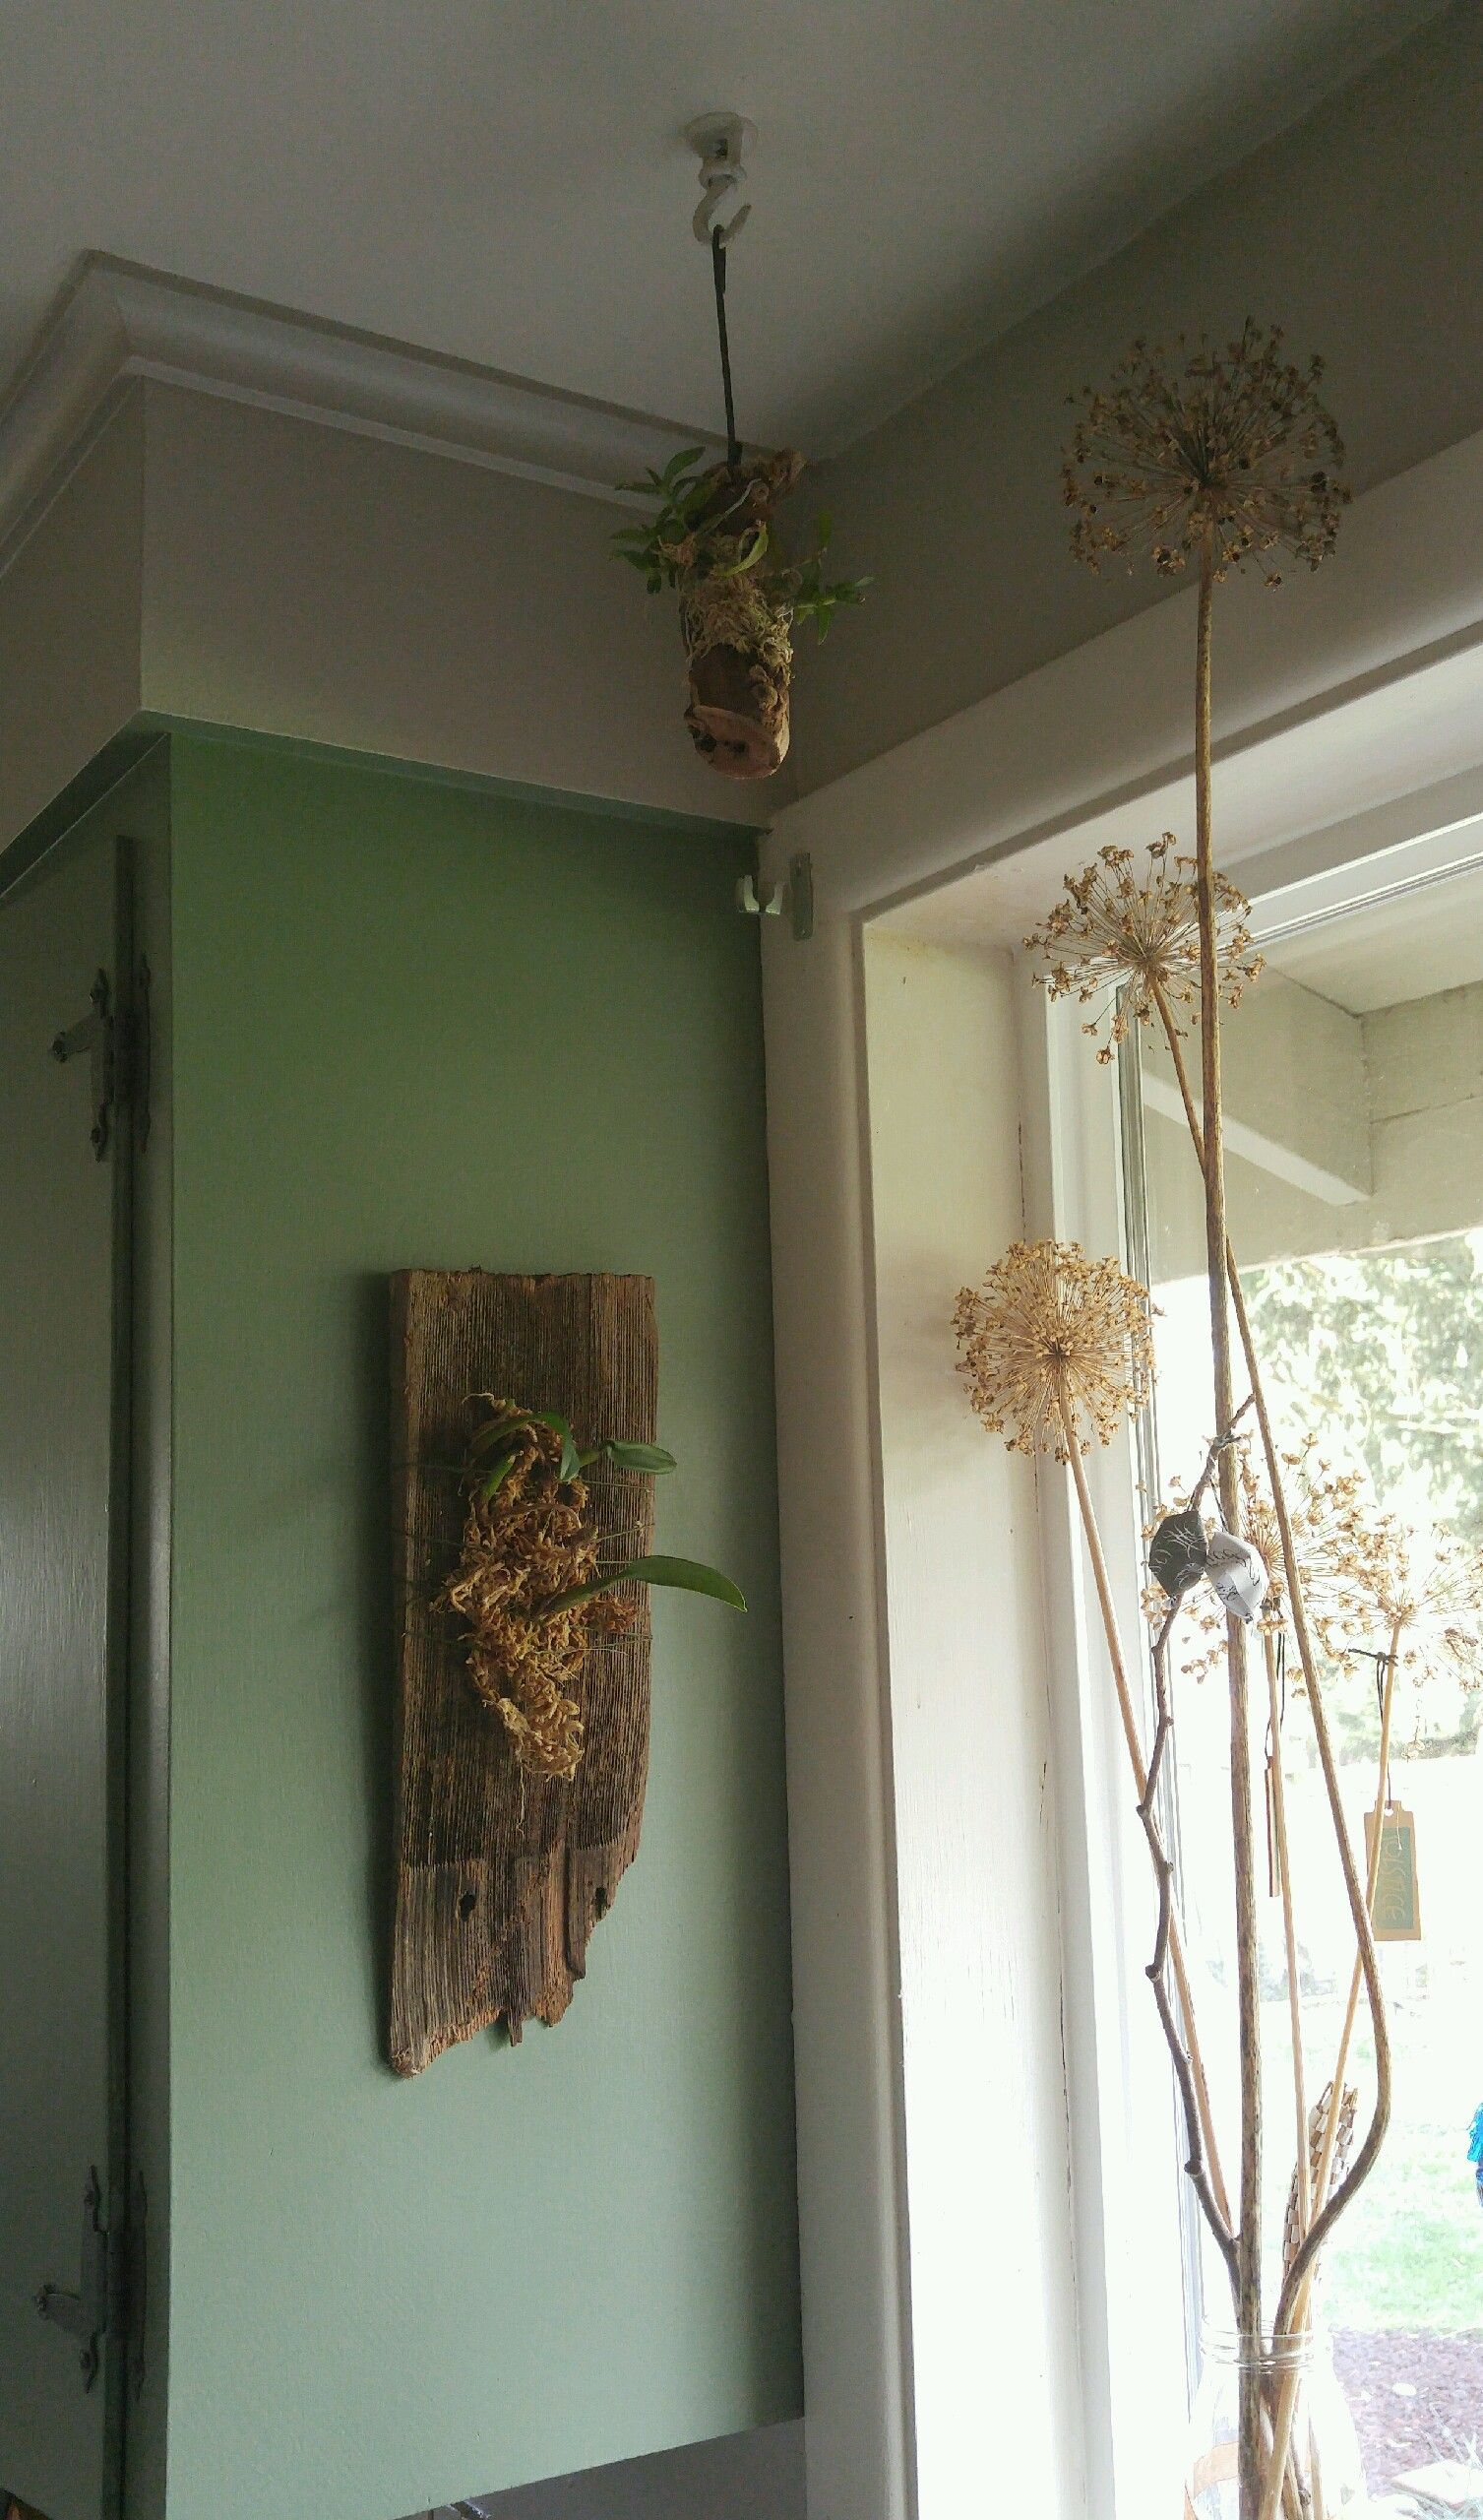 Corner of kitchen cabinet & windowsill~ dried flowers in a vase, and orchids growing on old shingle and hanging stick.